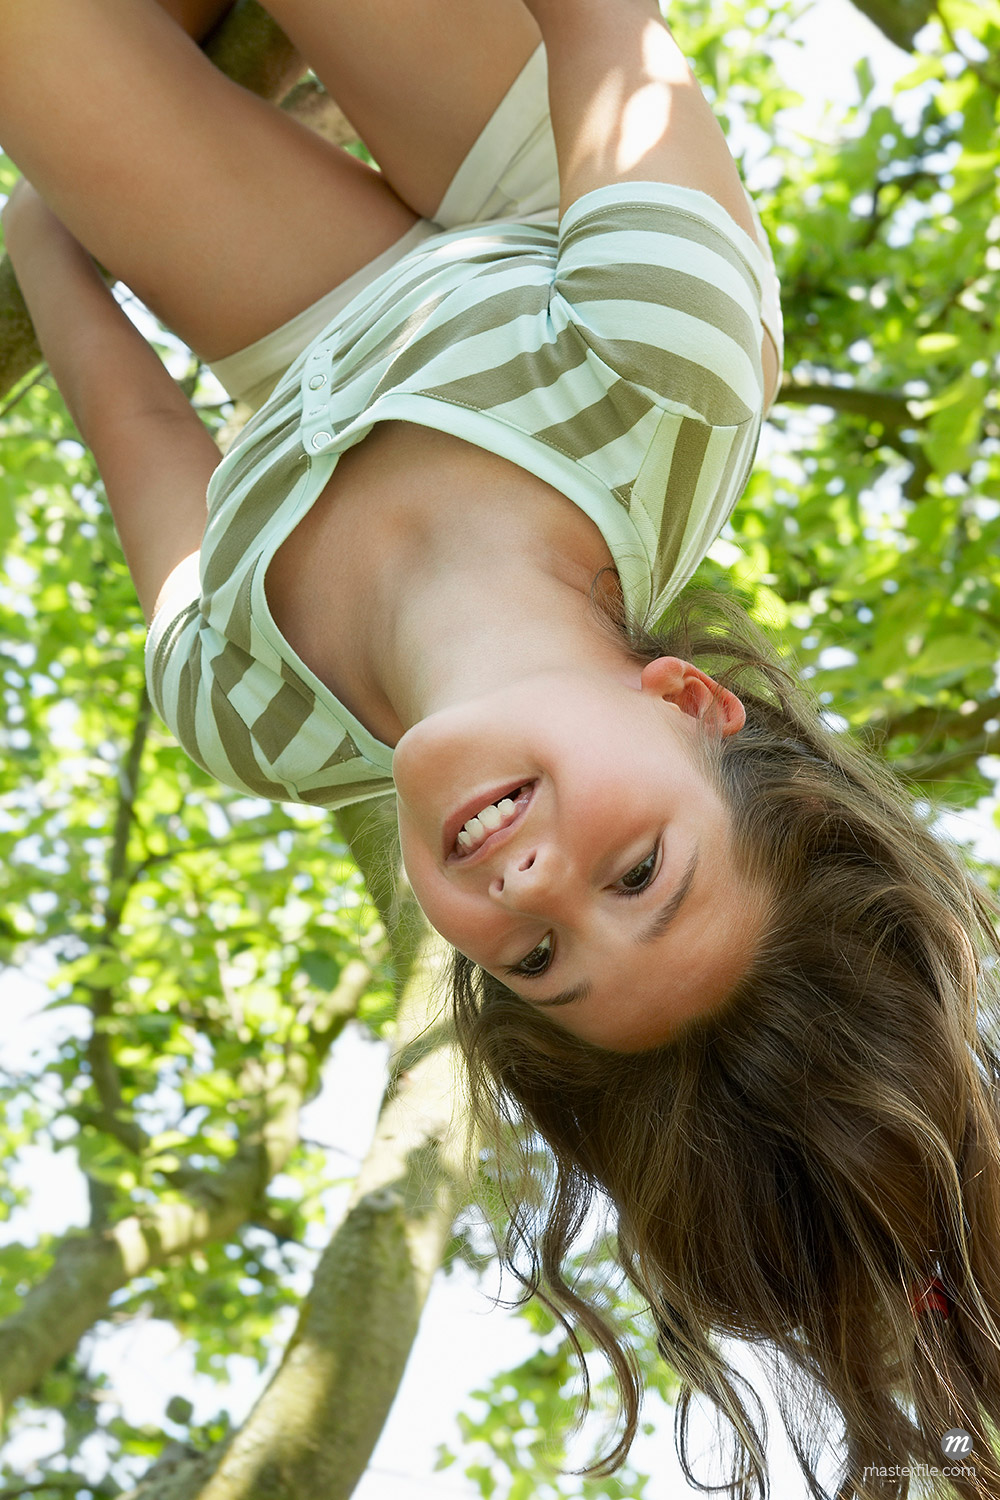 Young girl hanging upside down from tree, low angle view © Masterfile